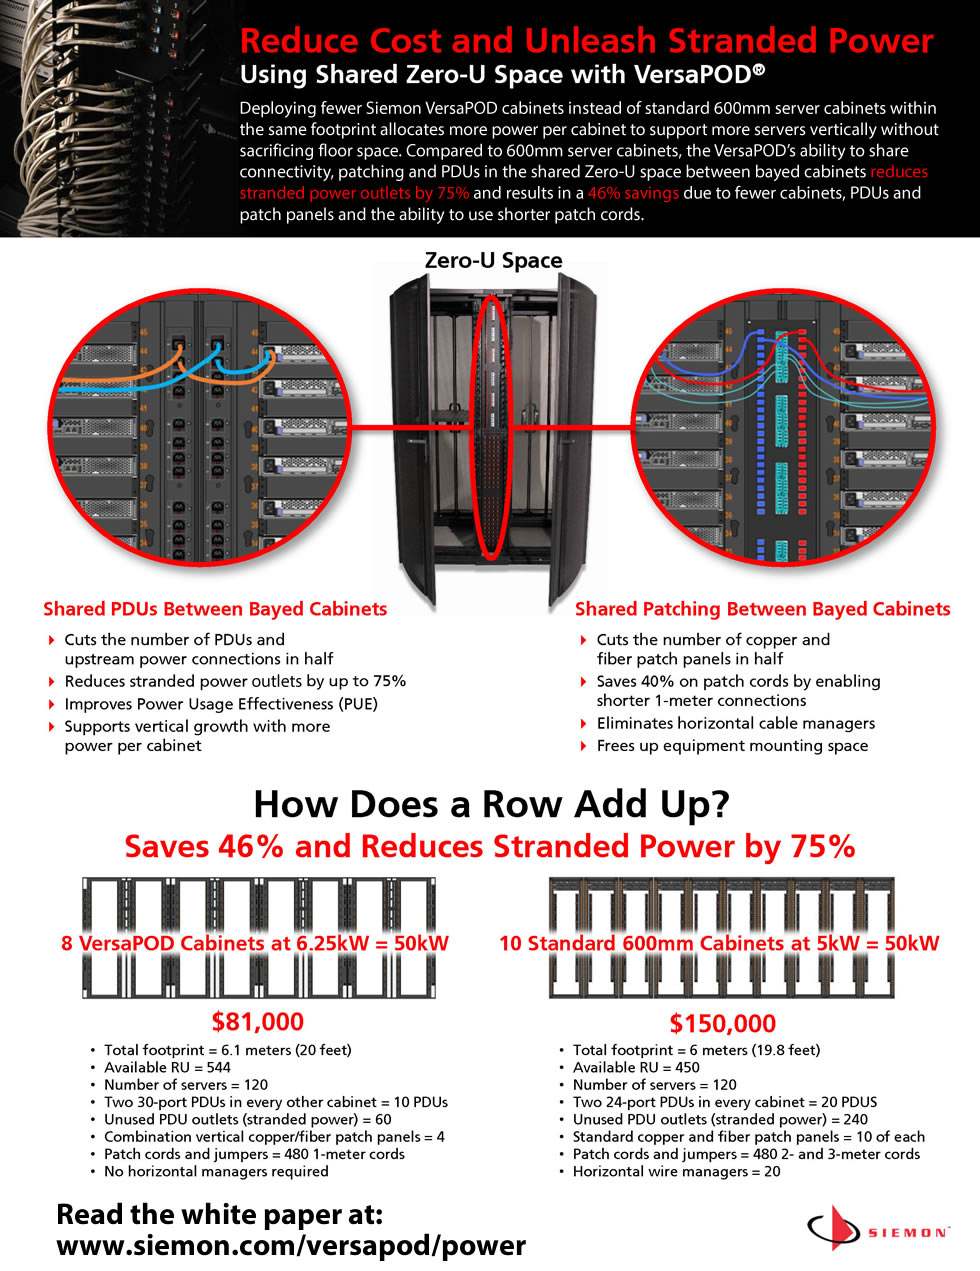 Reduce Cost and Unleash Stranded Power Infographic - Siemon